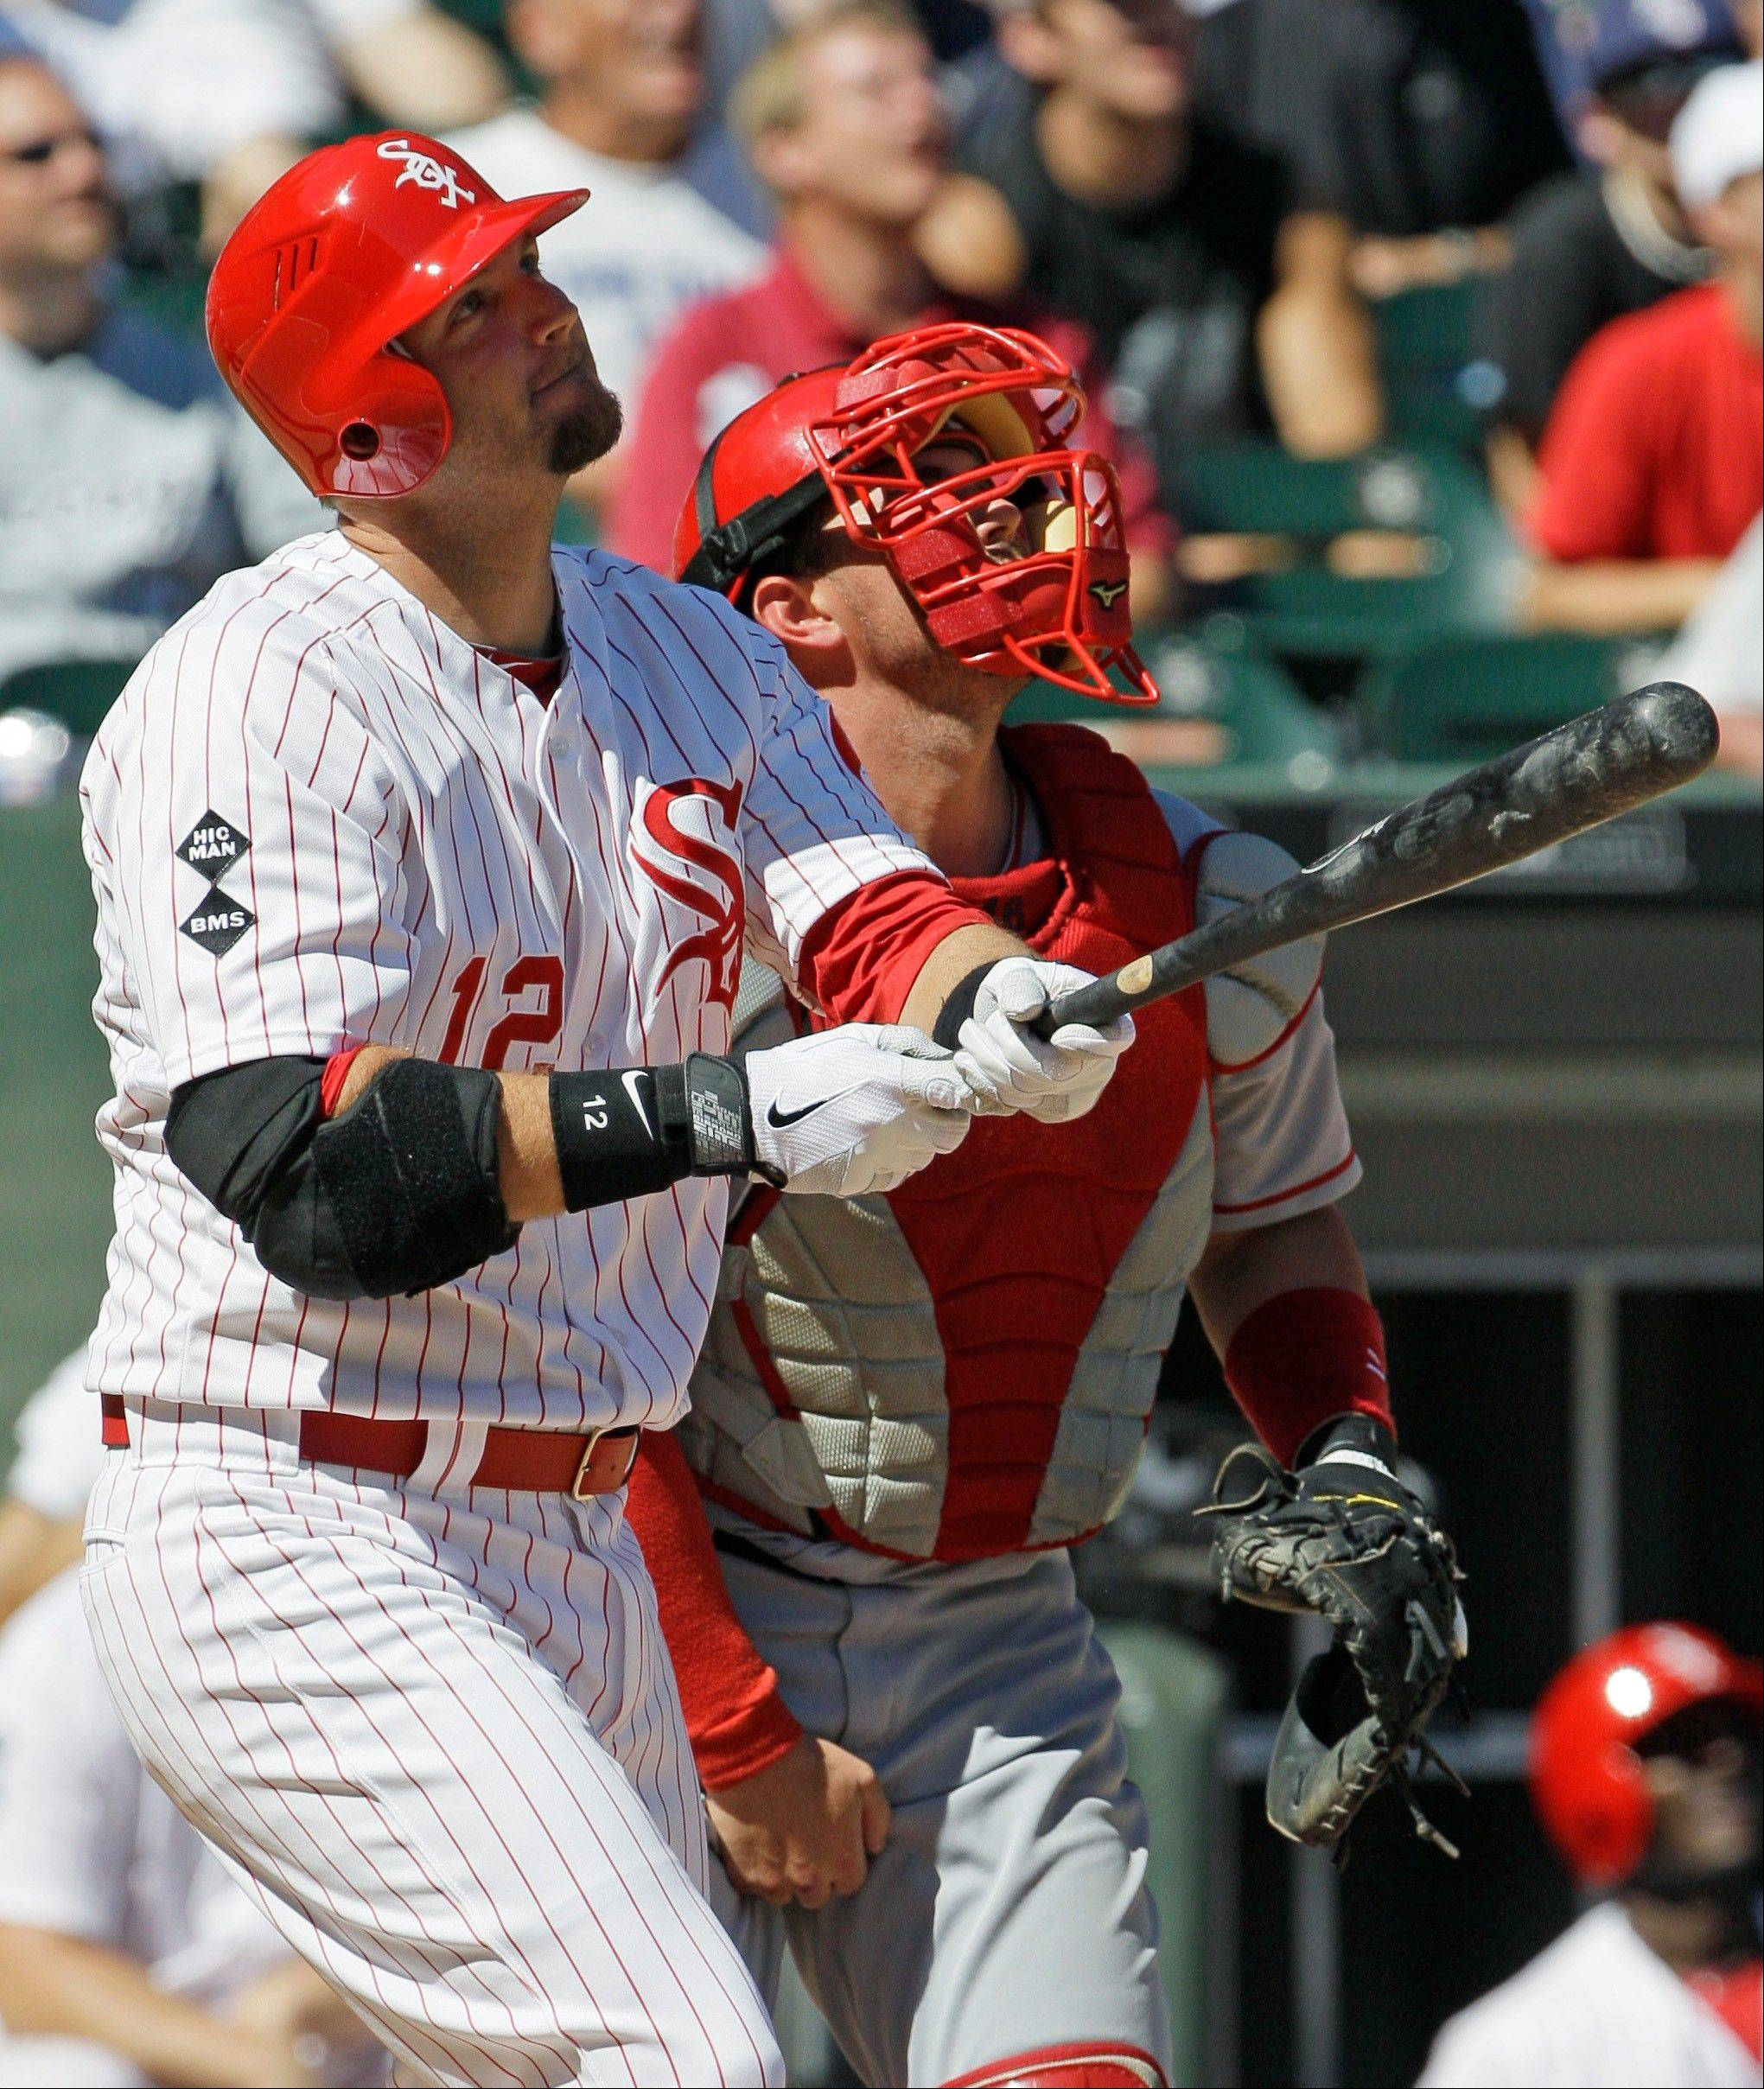 A.J. Pierzynski watches the flight of his 2-run, pinch-hit home run Sunday to put the White Sox in front. Pierzynski has hit a home run in five consecutive games.